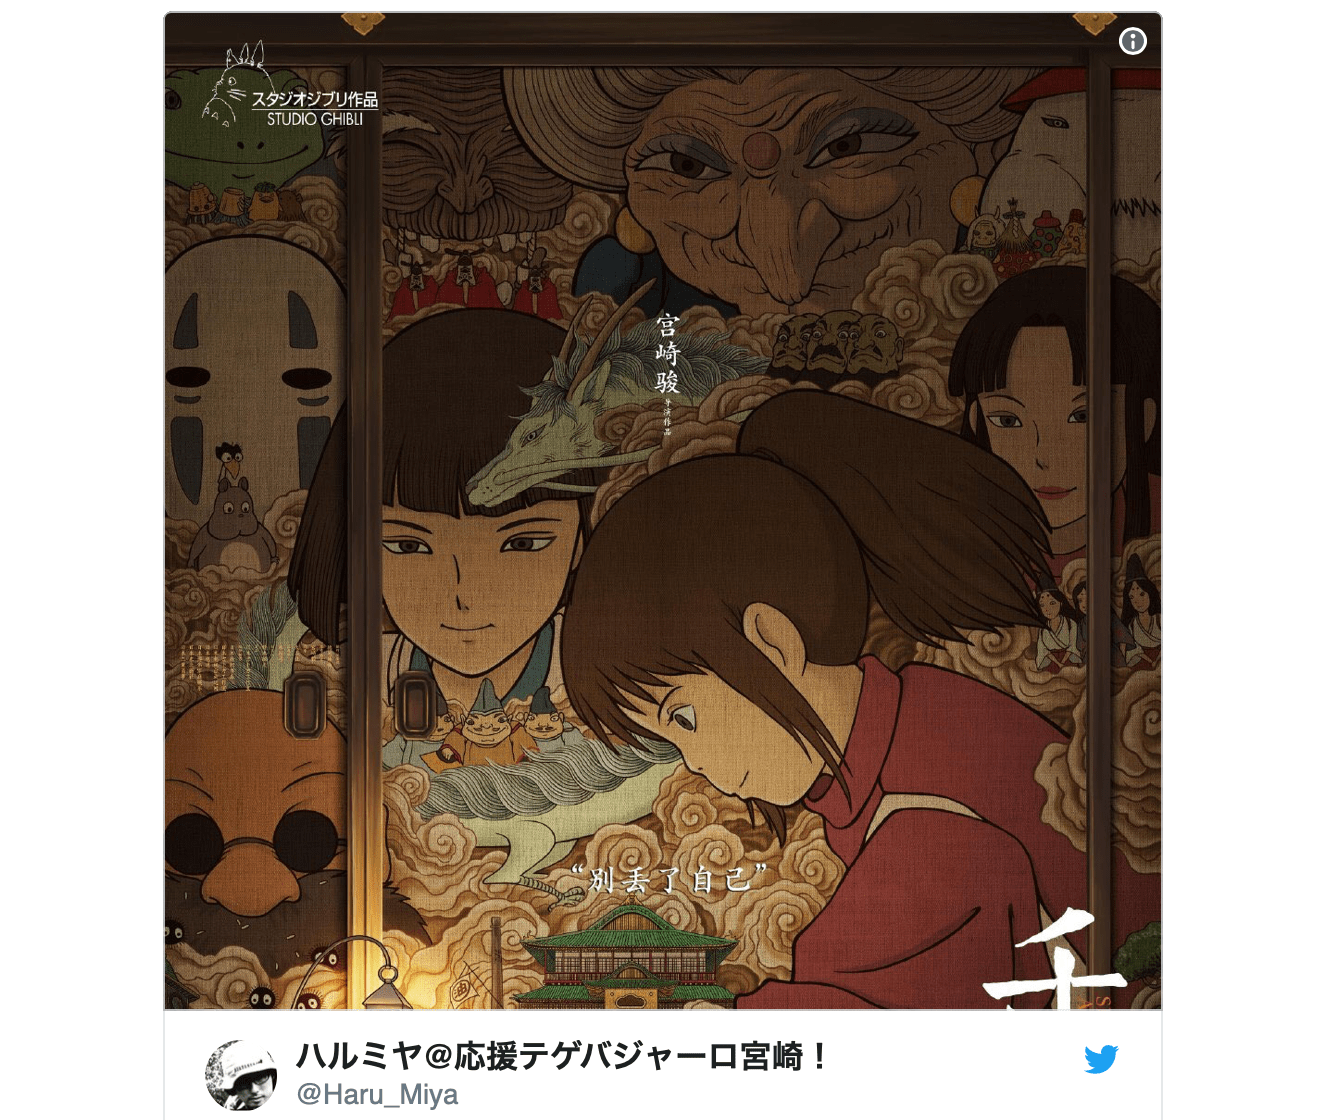 spirited away posters for first